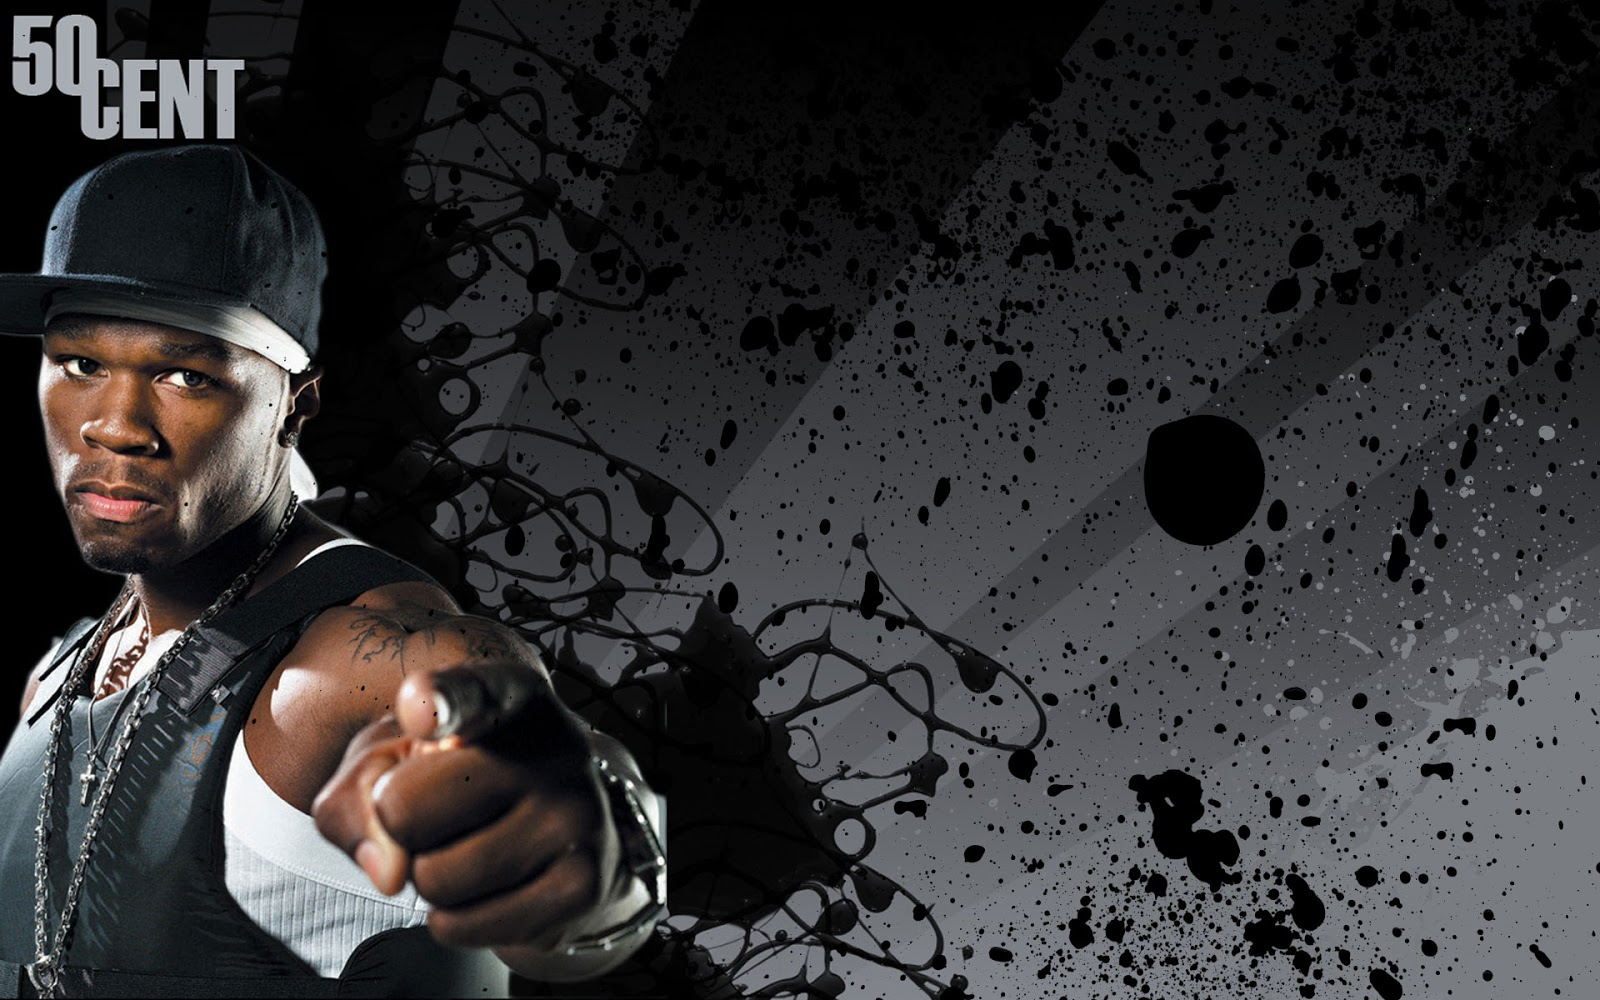 wallpapers 50 cent wallpapers 50 cent wallpapers 50 cent wallpapers 50 1600x1000